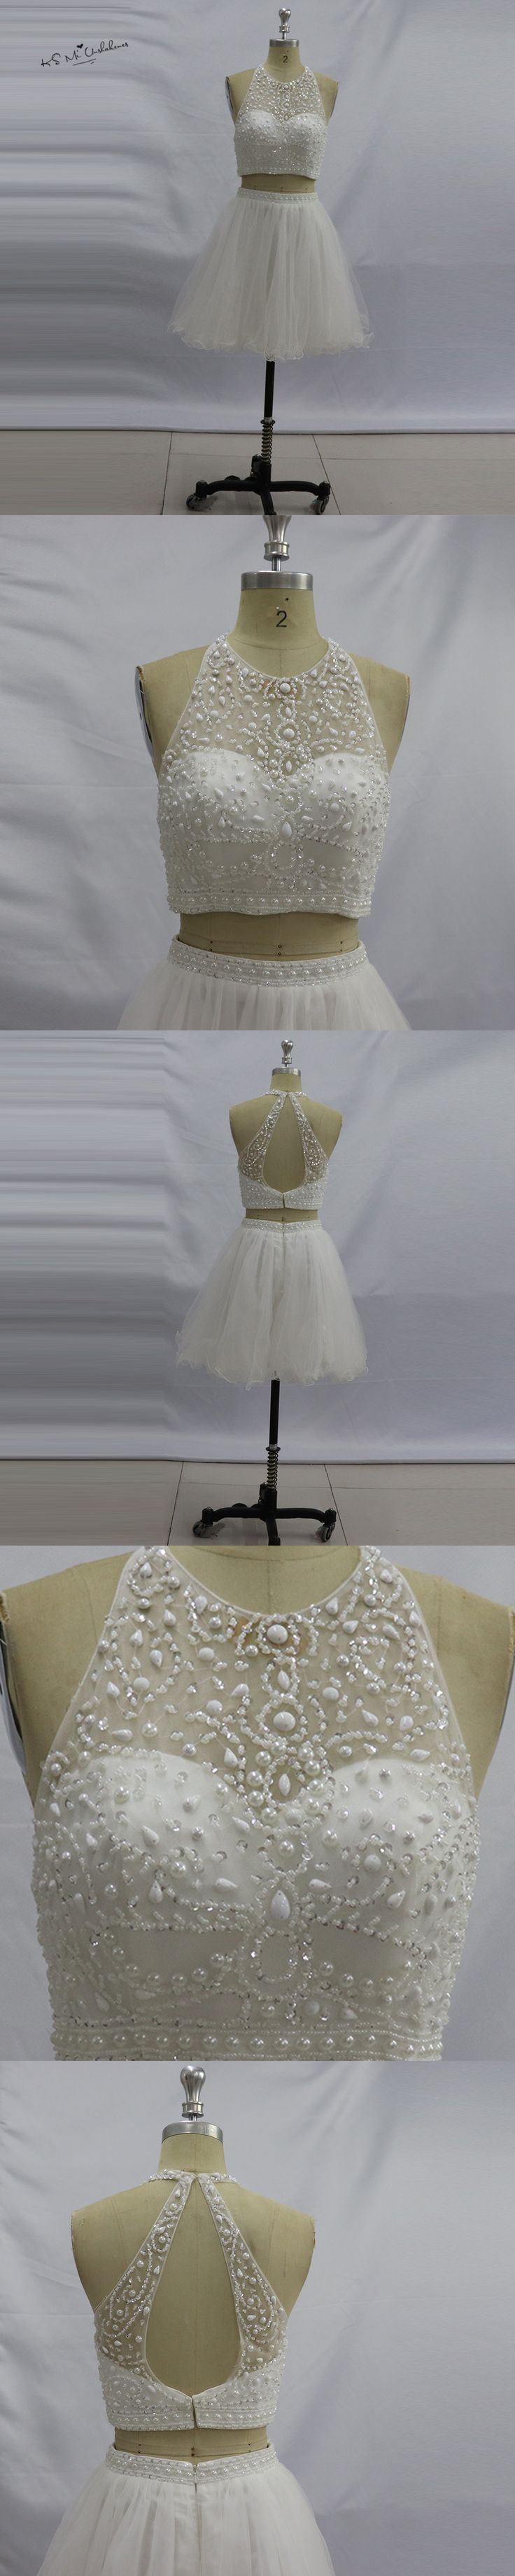 Ivory Luxury Cocktail Party Dress 2017 Beaded Two Piece Prom Dresses Knee Length Homecoming Dress Vestidos de Gala Curto China